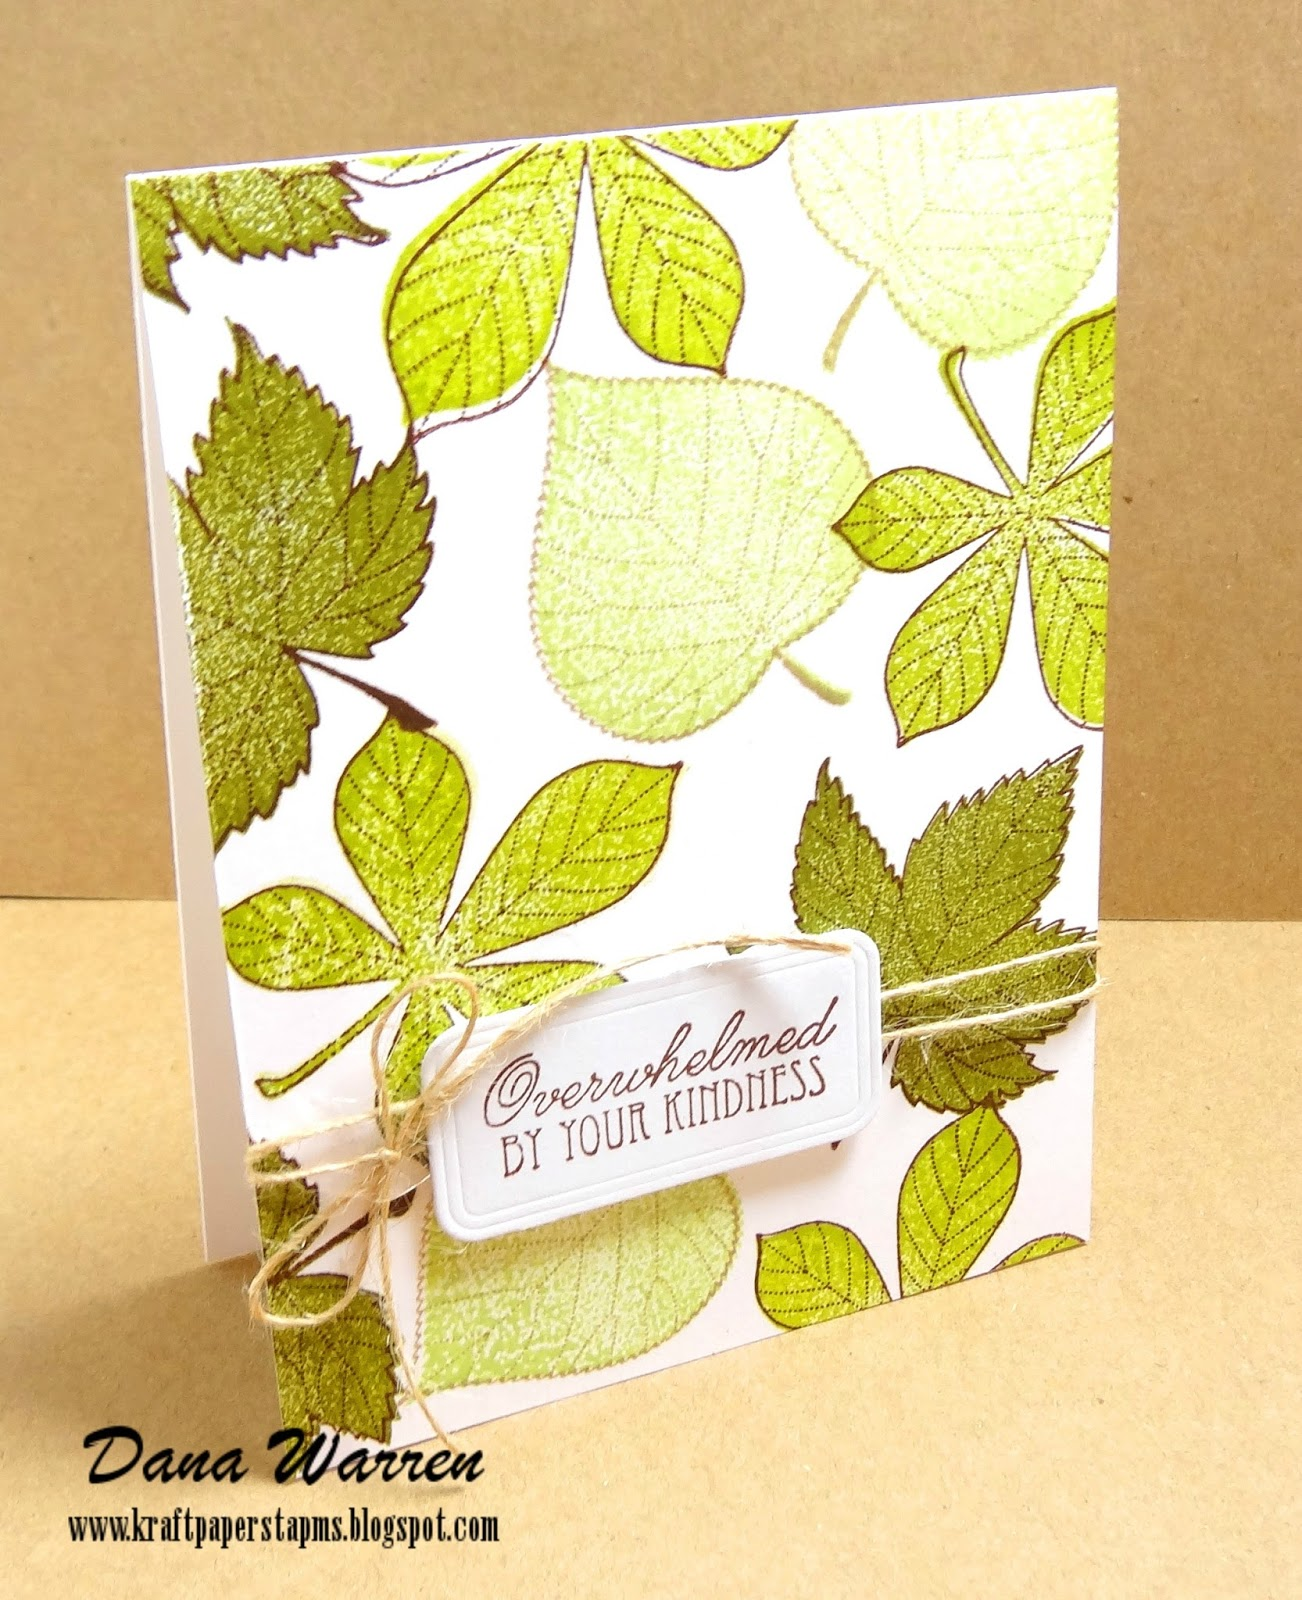 Dana Warren - Kraft Paper Stamps - Penny Black